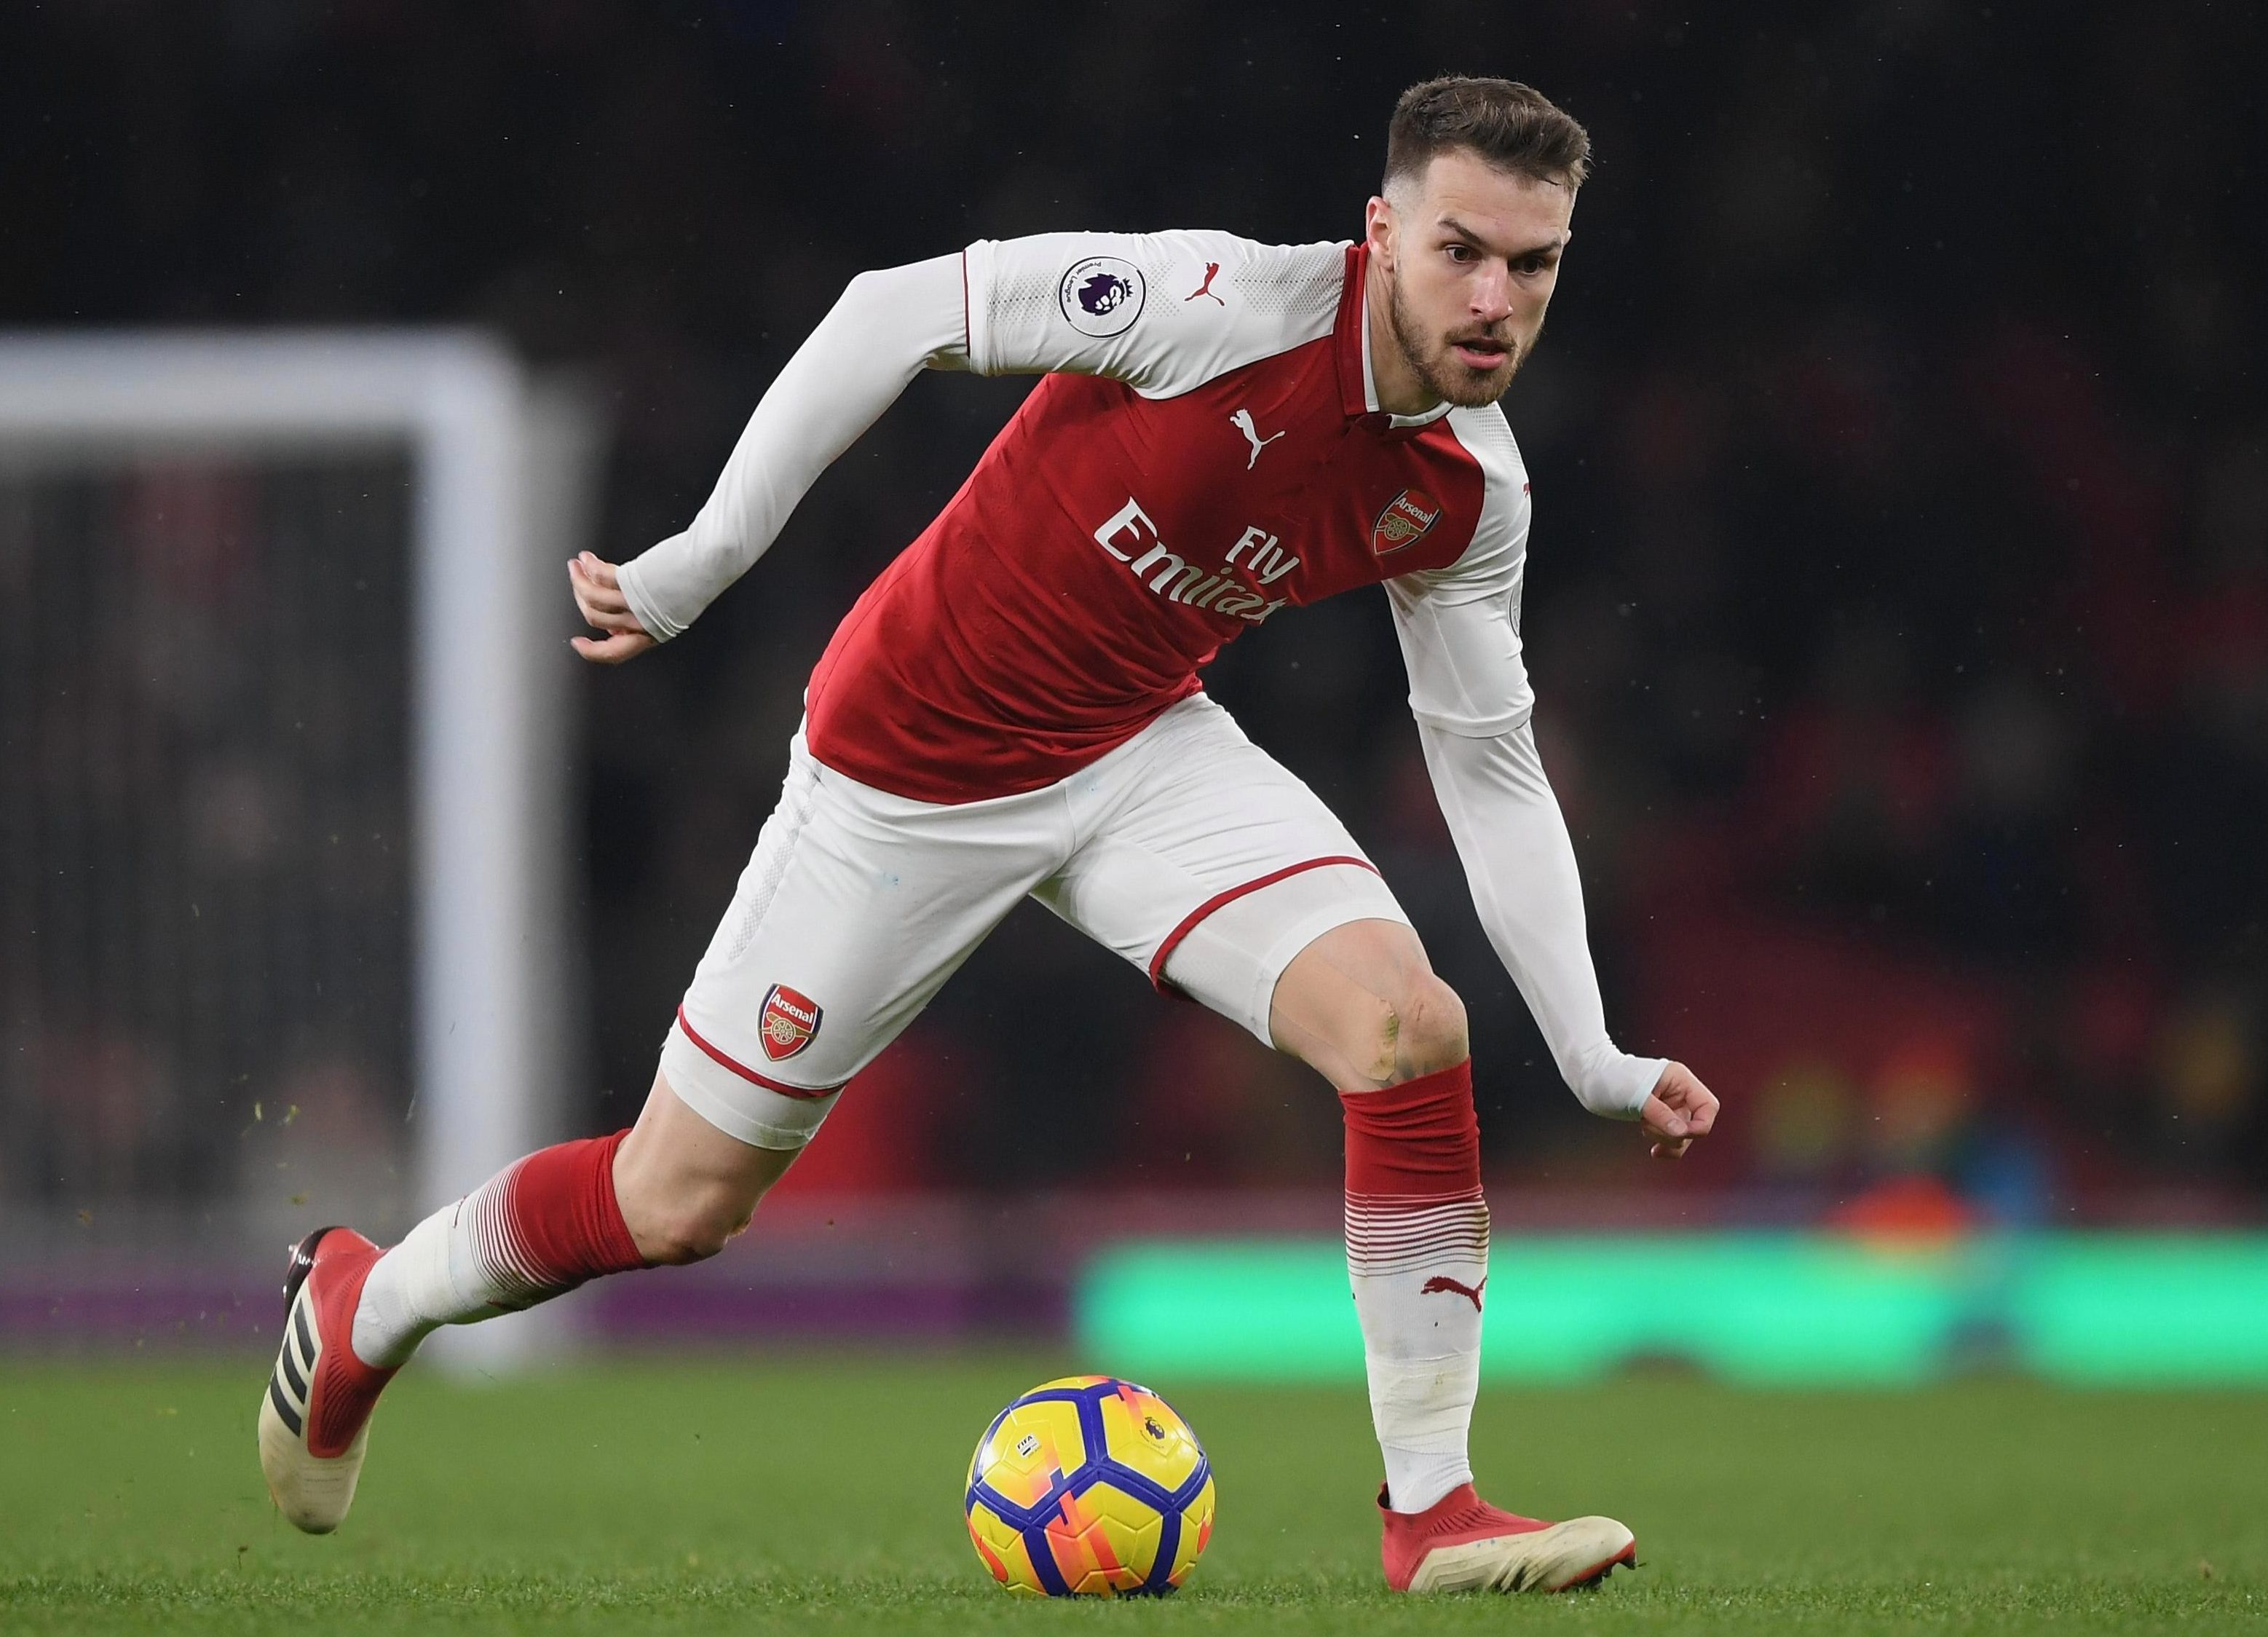 Aaron Ramsey is coming to the end of his Arsenal contract